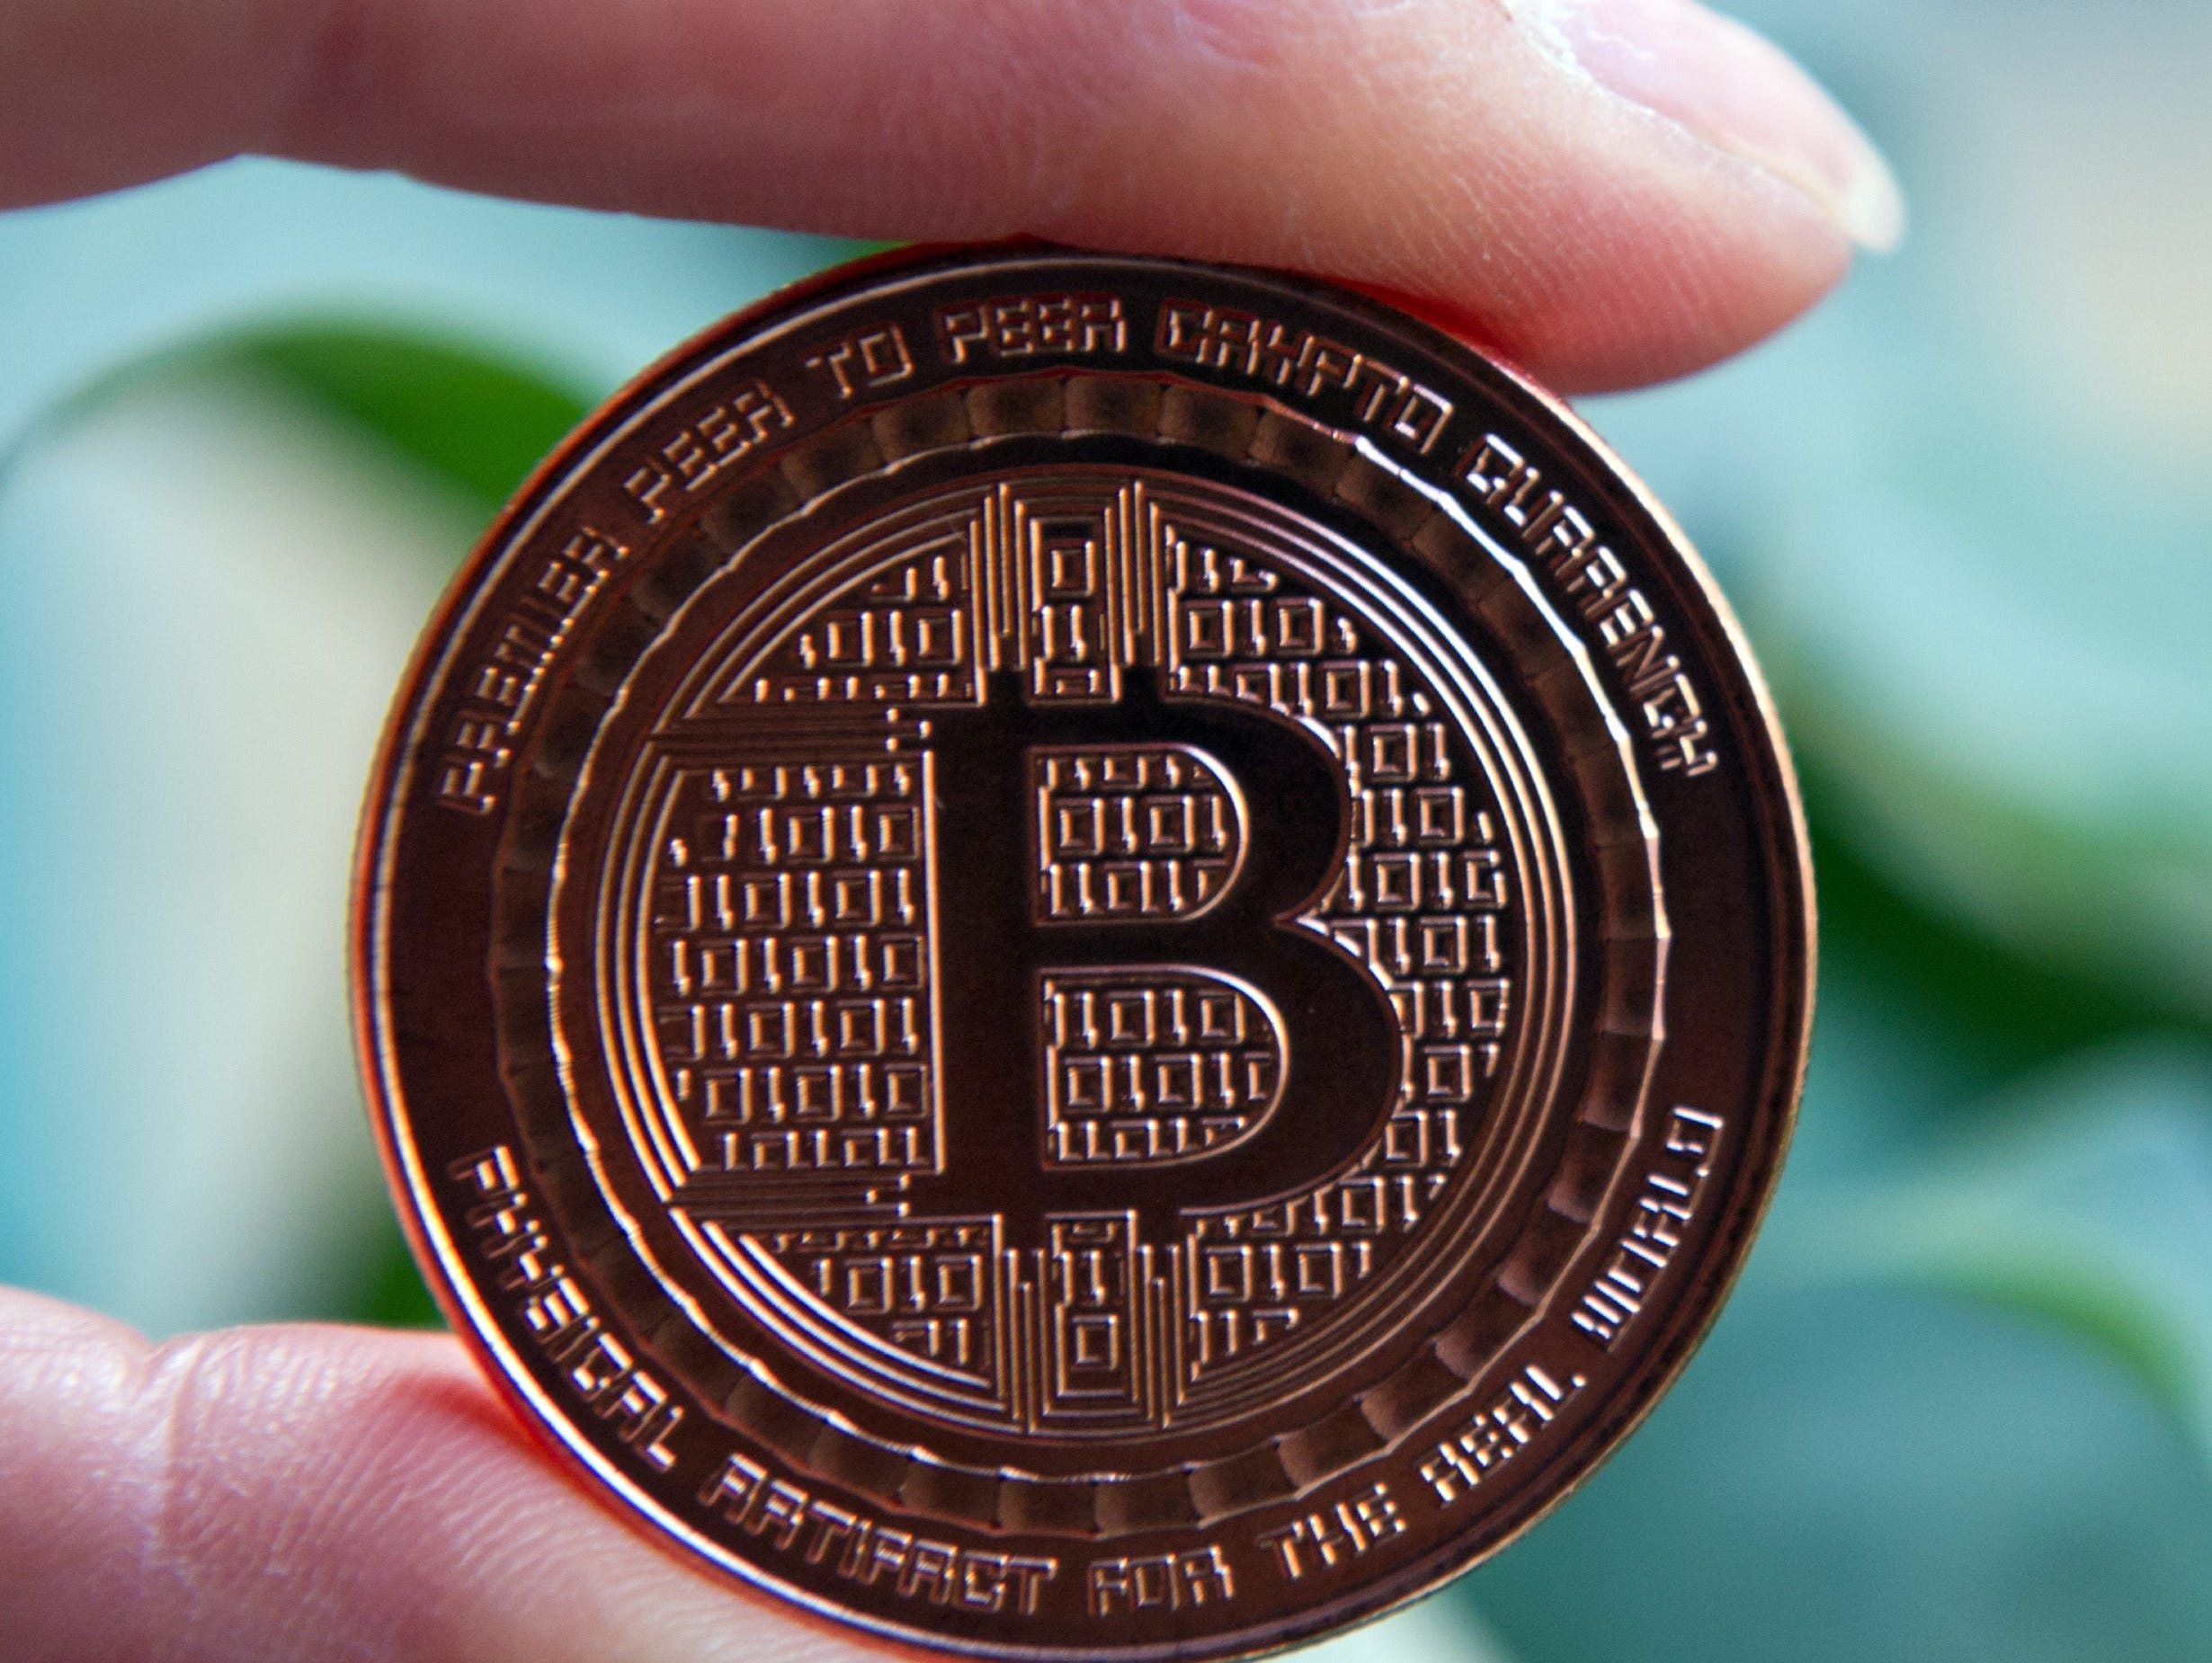 This May 1, 2014 photo taken in Washington, DC shows a bitcoin medal. Bitcoin uses peer-to-peer technology to operate with no central authority or banks; managing transactions and the issuing of bitcoins is carried out collectively by the network. Th